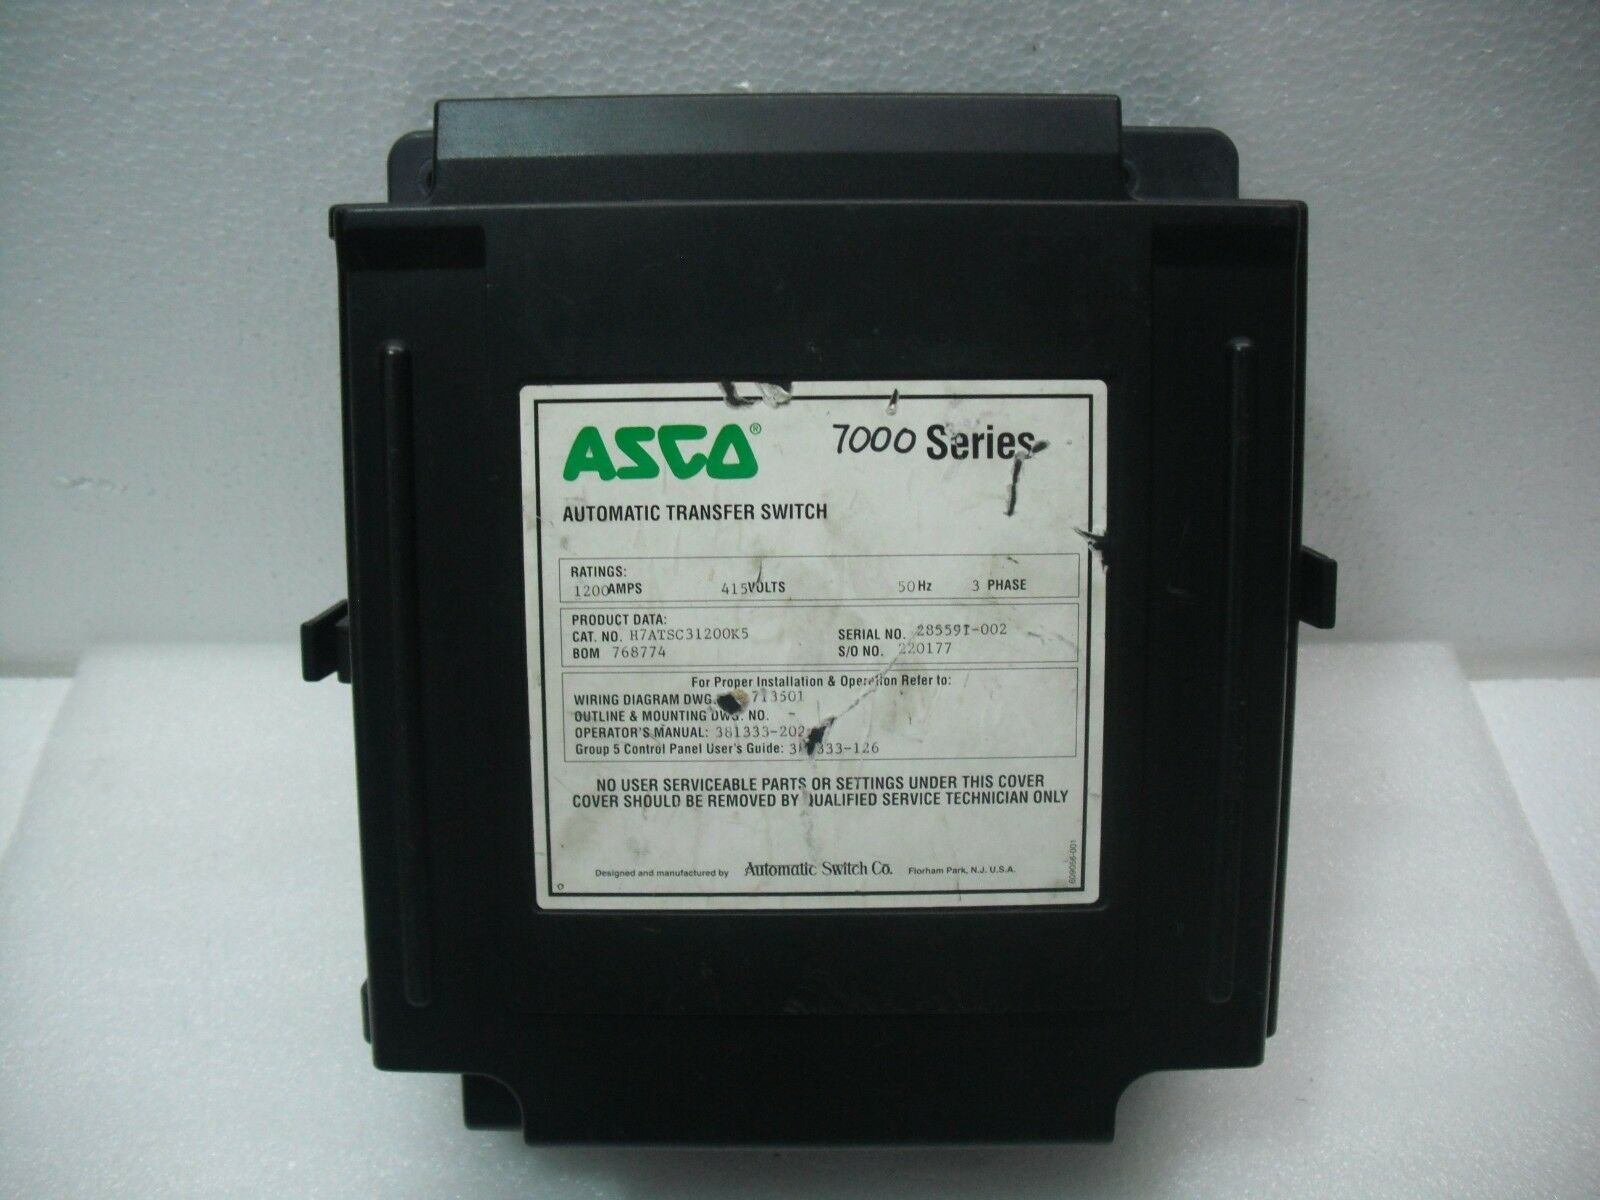 Asco 7000 Series Automatic Transfer Switch Ebay On 3 Phase Wiring Norton Secured Powered By Verisign